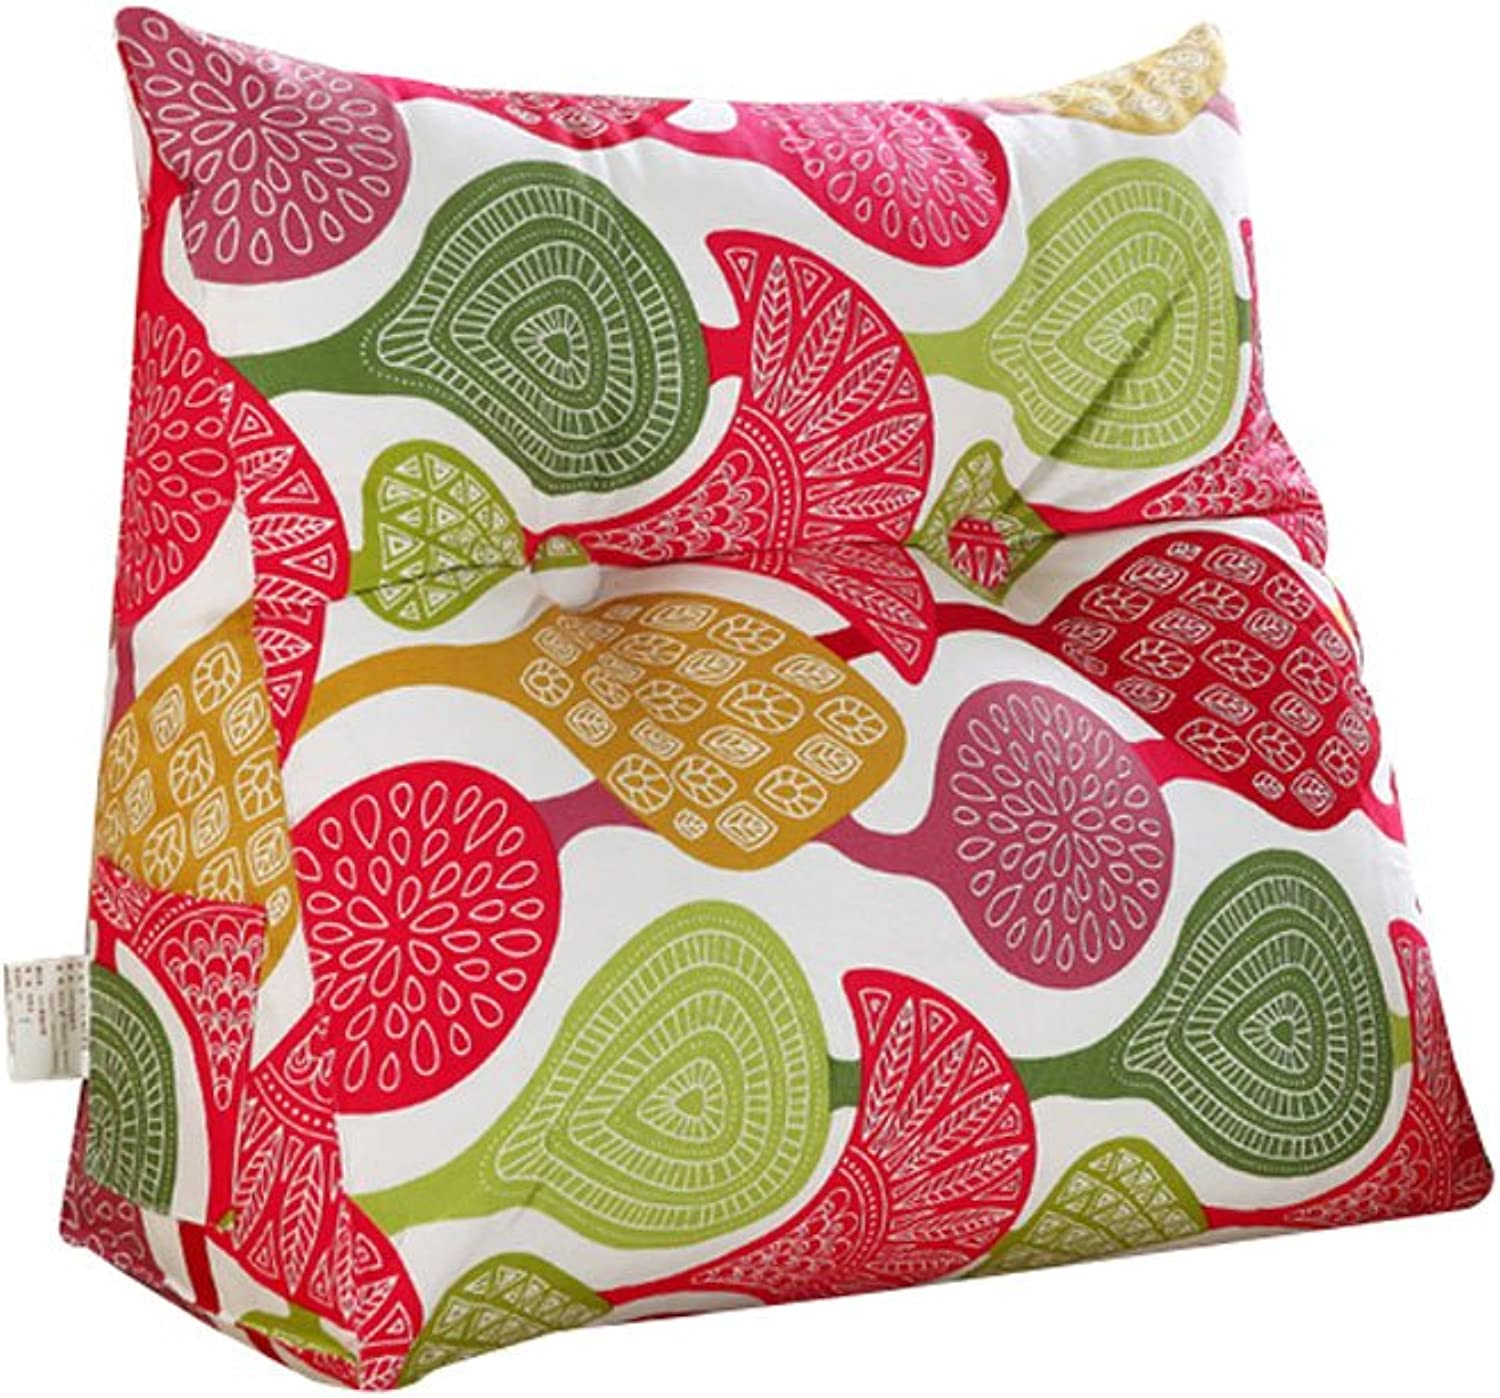 DDSS Bed cushion Bedside Triangular Cushion Large Back Bed Tatami Sofa Cushions Waist Pillow Washable Printing  -  (color   B, Size   60cm20cm50cm)